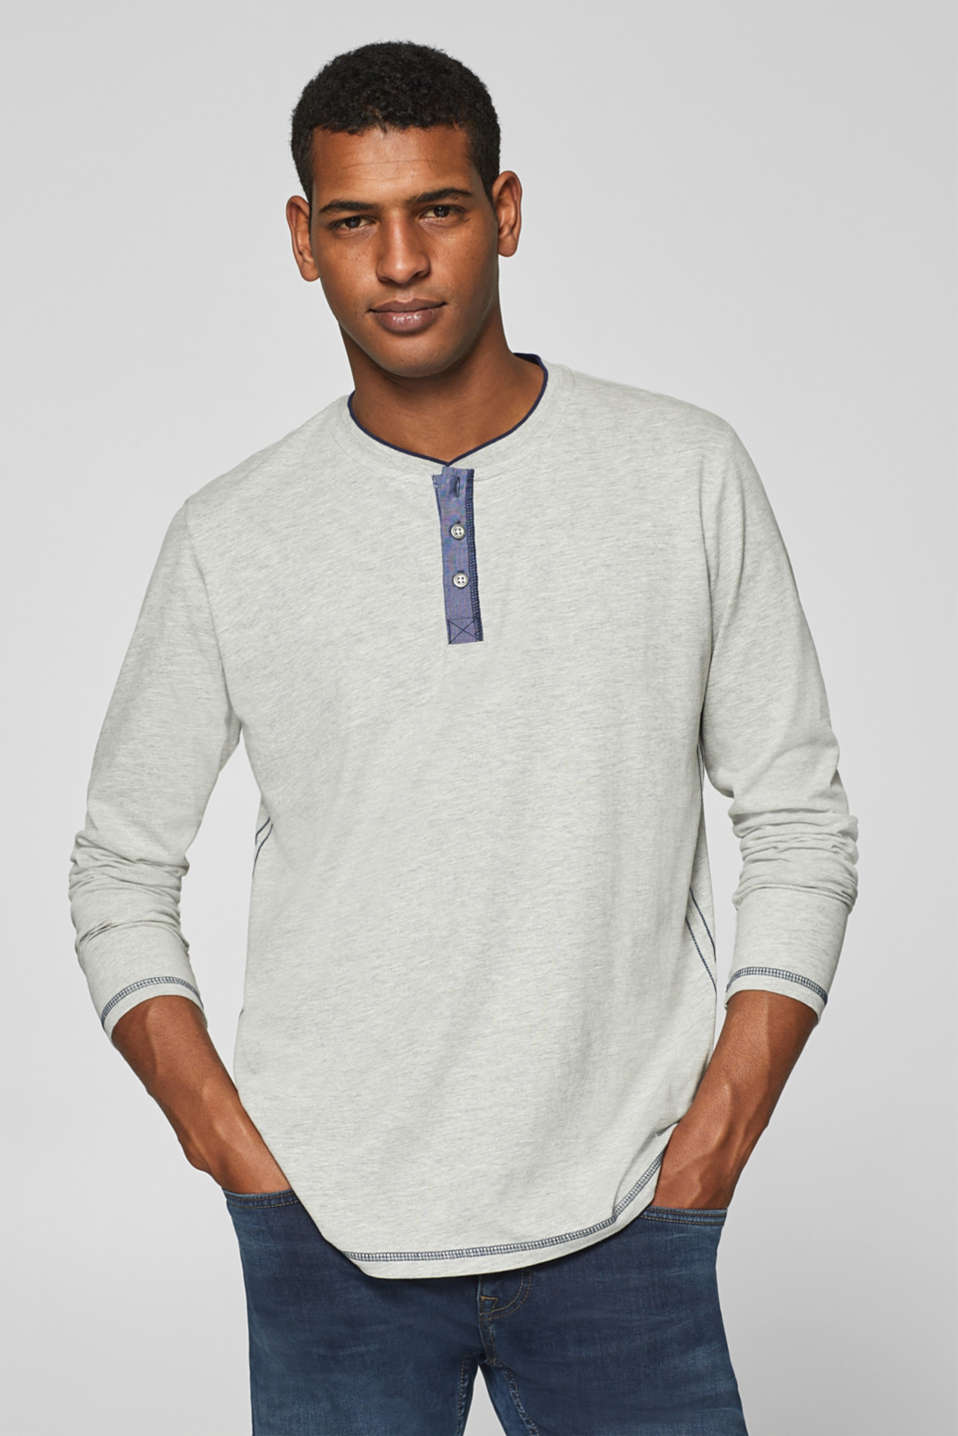 Esprit - Long sleeve top with Henley neckline, made of jersey